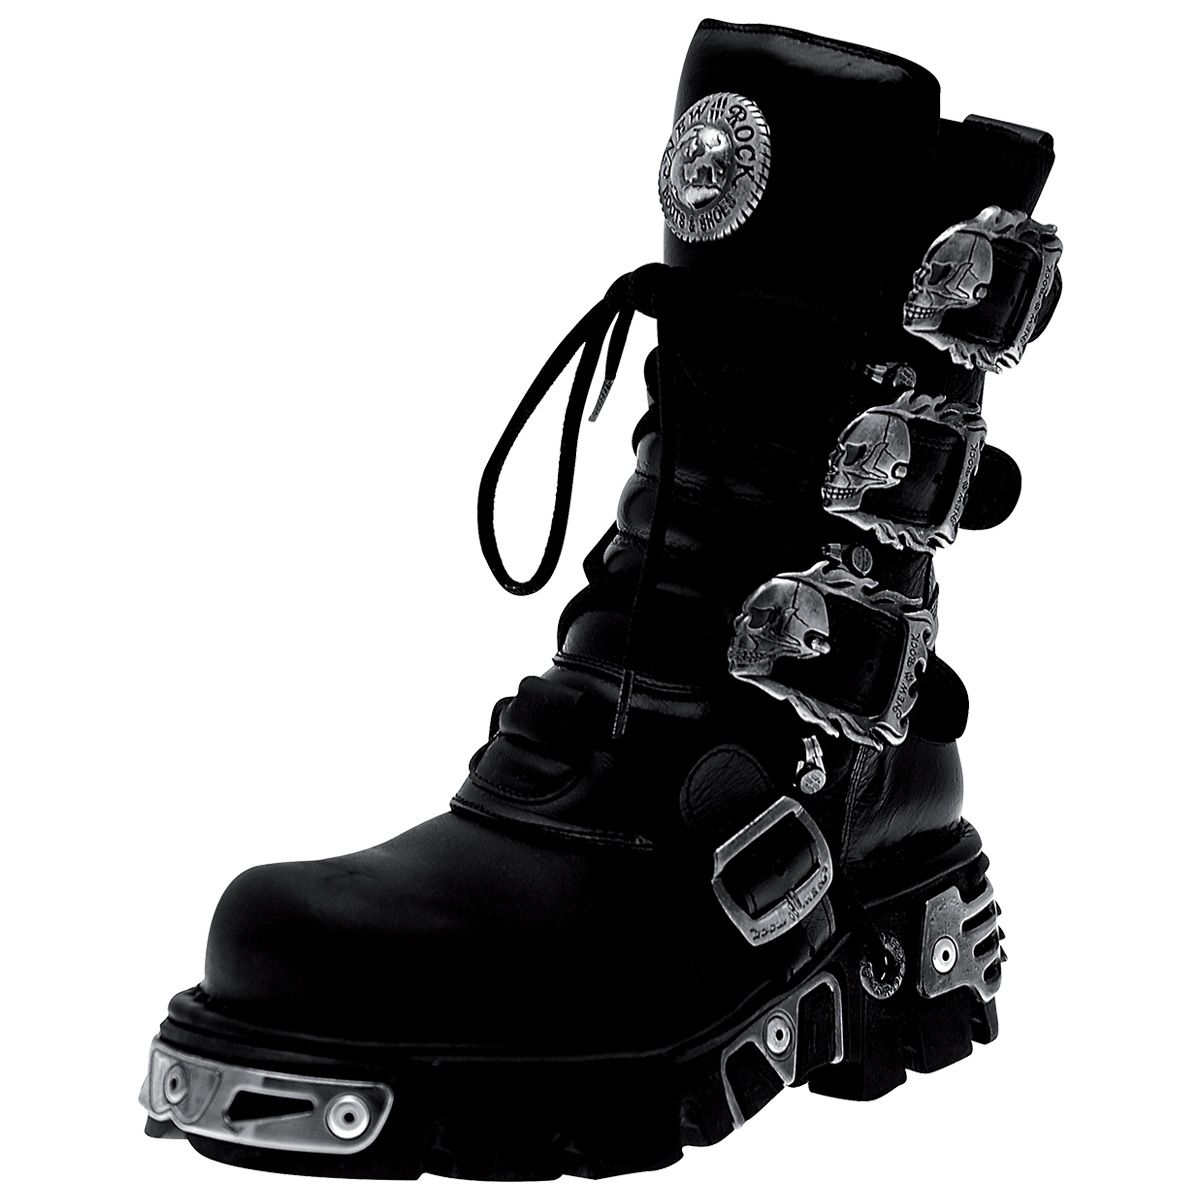 A ROCK Rock NEW Chaussures Gogo Sublime dxoeCB